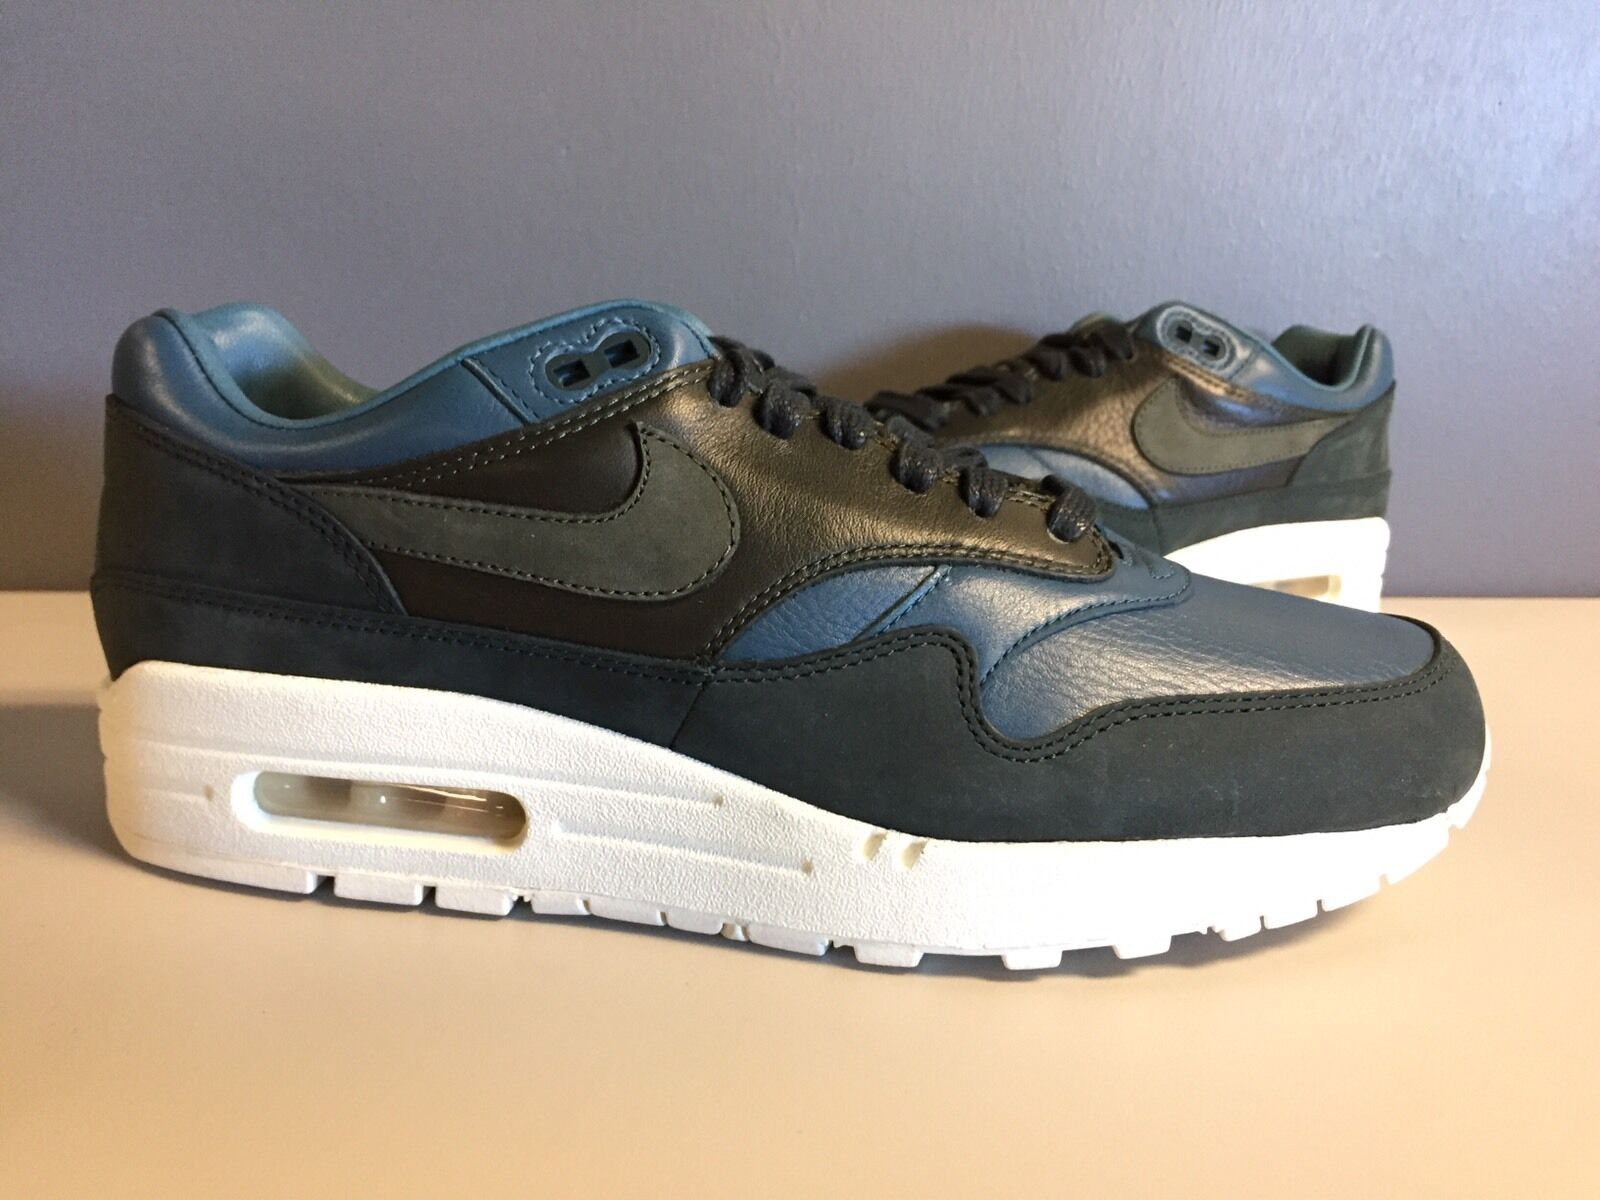 Nike Air Max 1 Atomic Pinnacle Iced jade oscuro Atomic 1 Teal 859554 300 SZ 8 nikelab gran descuento 14bae4